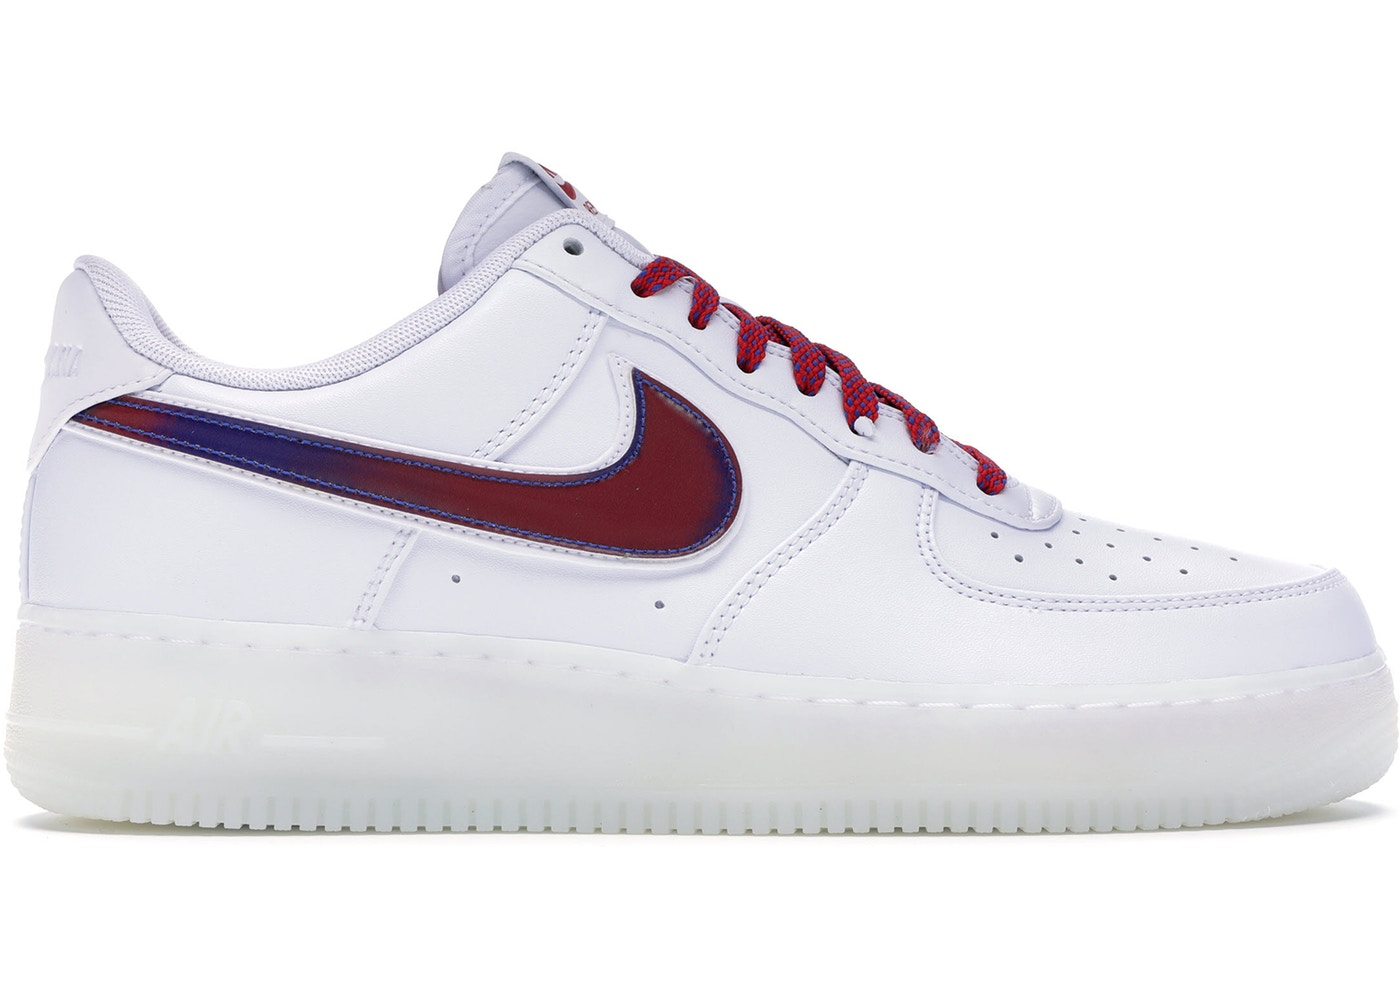 43c309f8e476 Buy Nike Air Force 1 Shoes   Deadstock Sneakers